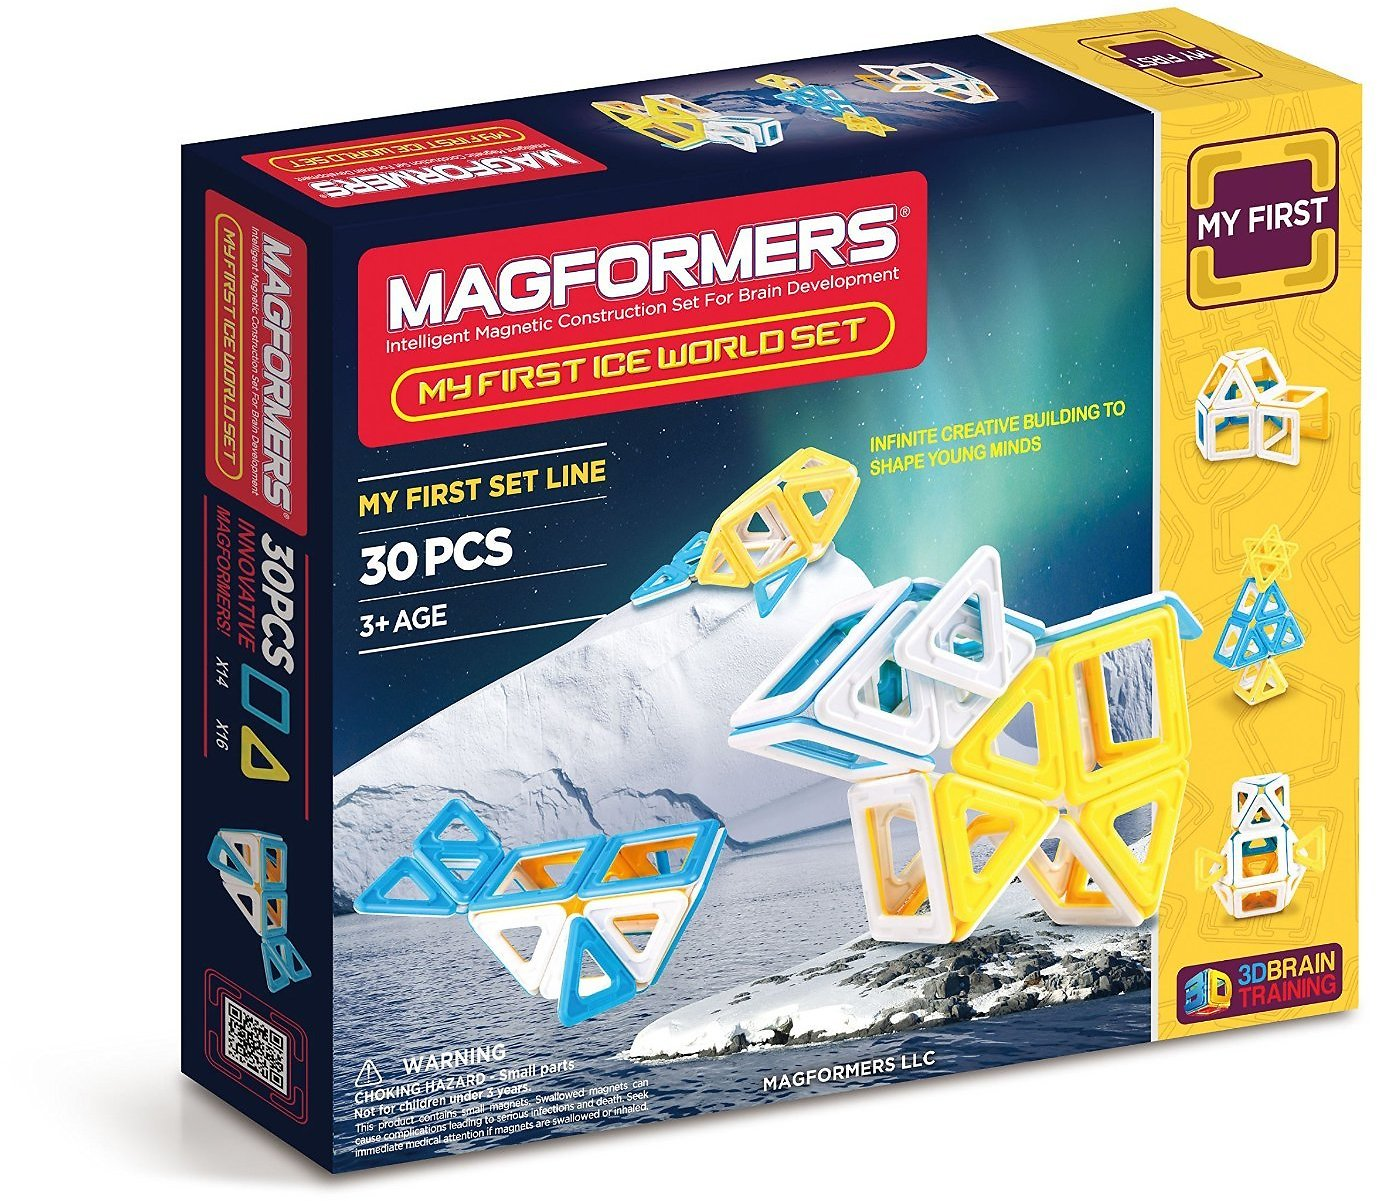 Magformers My First Ice World (30-pieces) Set Magnetic Building Blocks, Educational Magnetic Tiles Kit